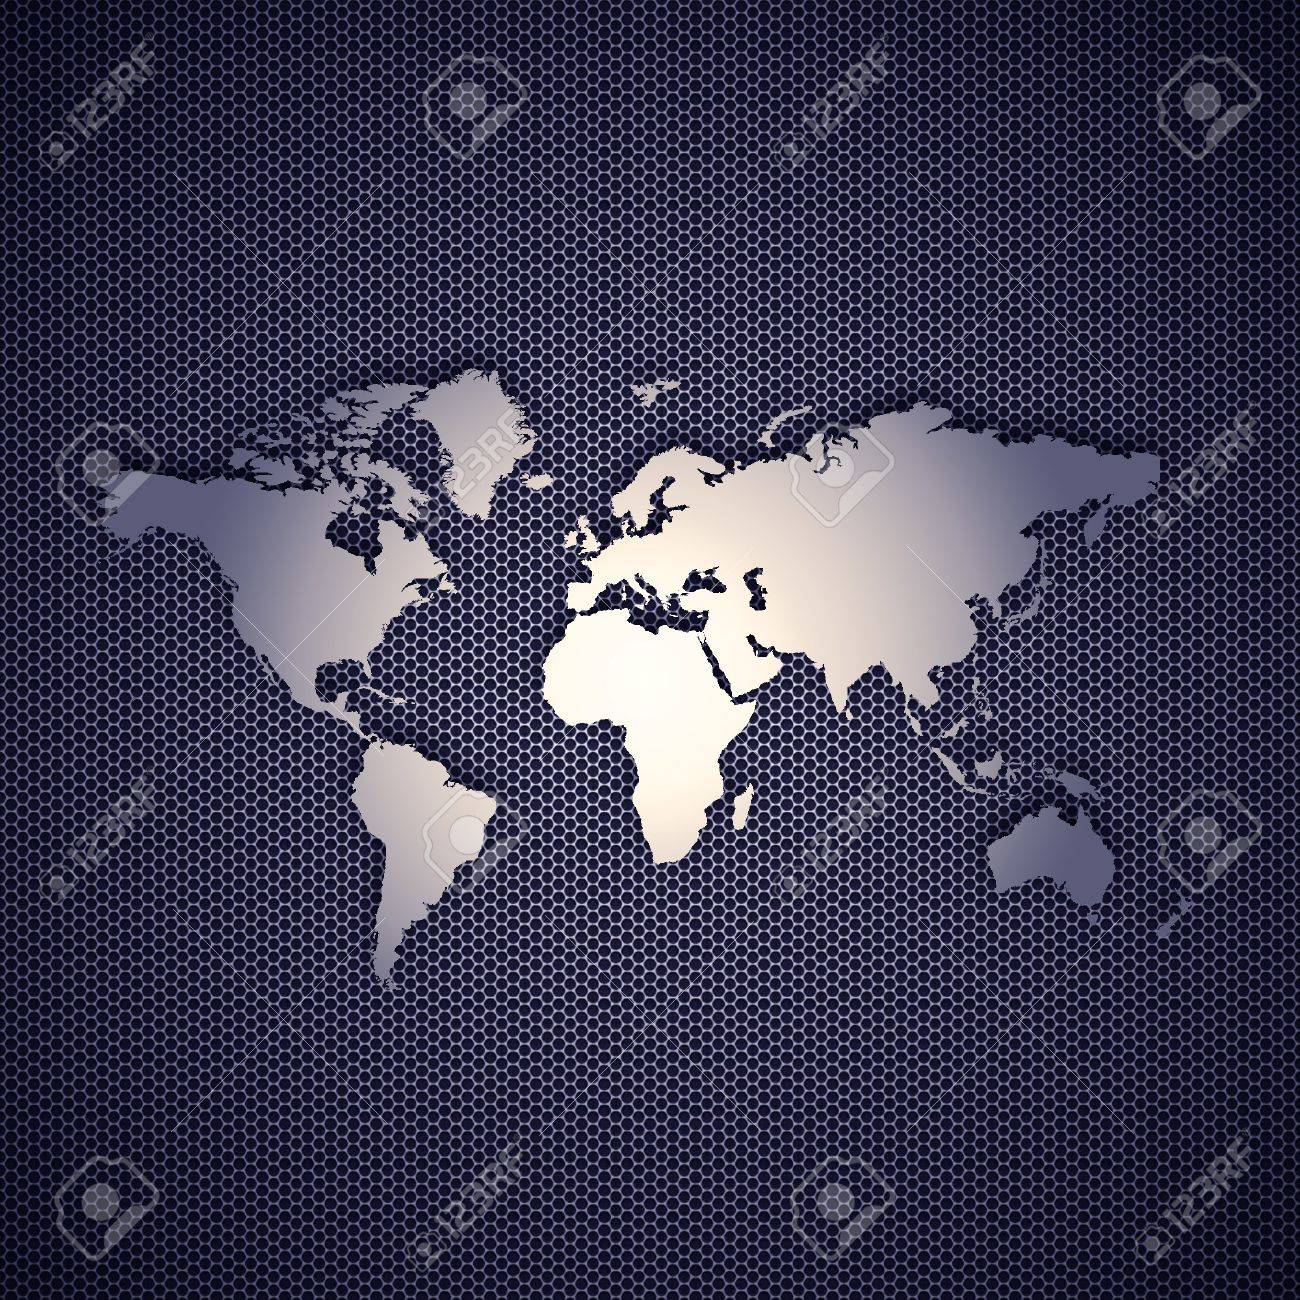 World map with metal background high resolution image stock photo stock photo world map with metal background high resolution image gumiabroncs Choice Image